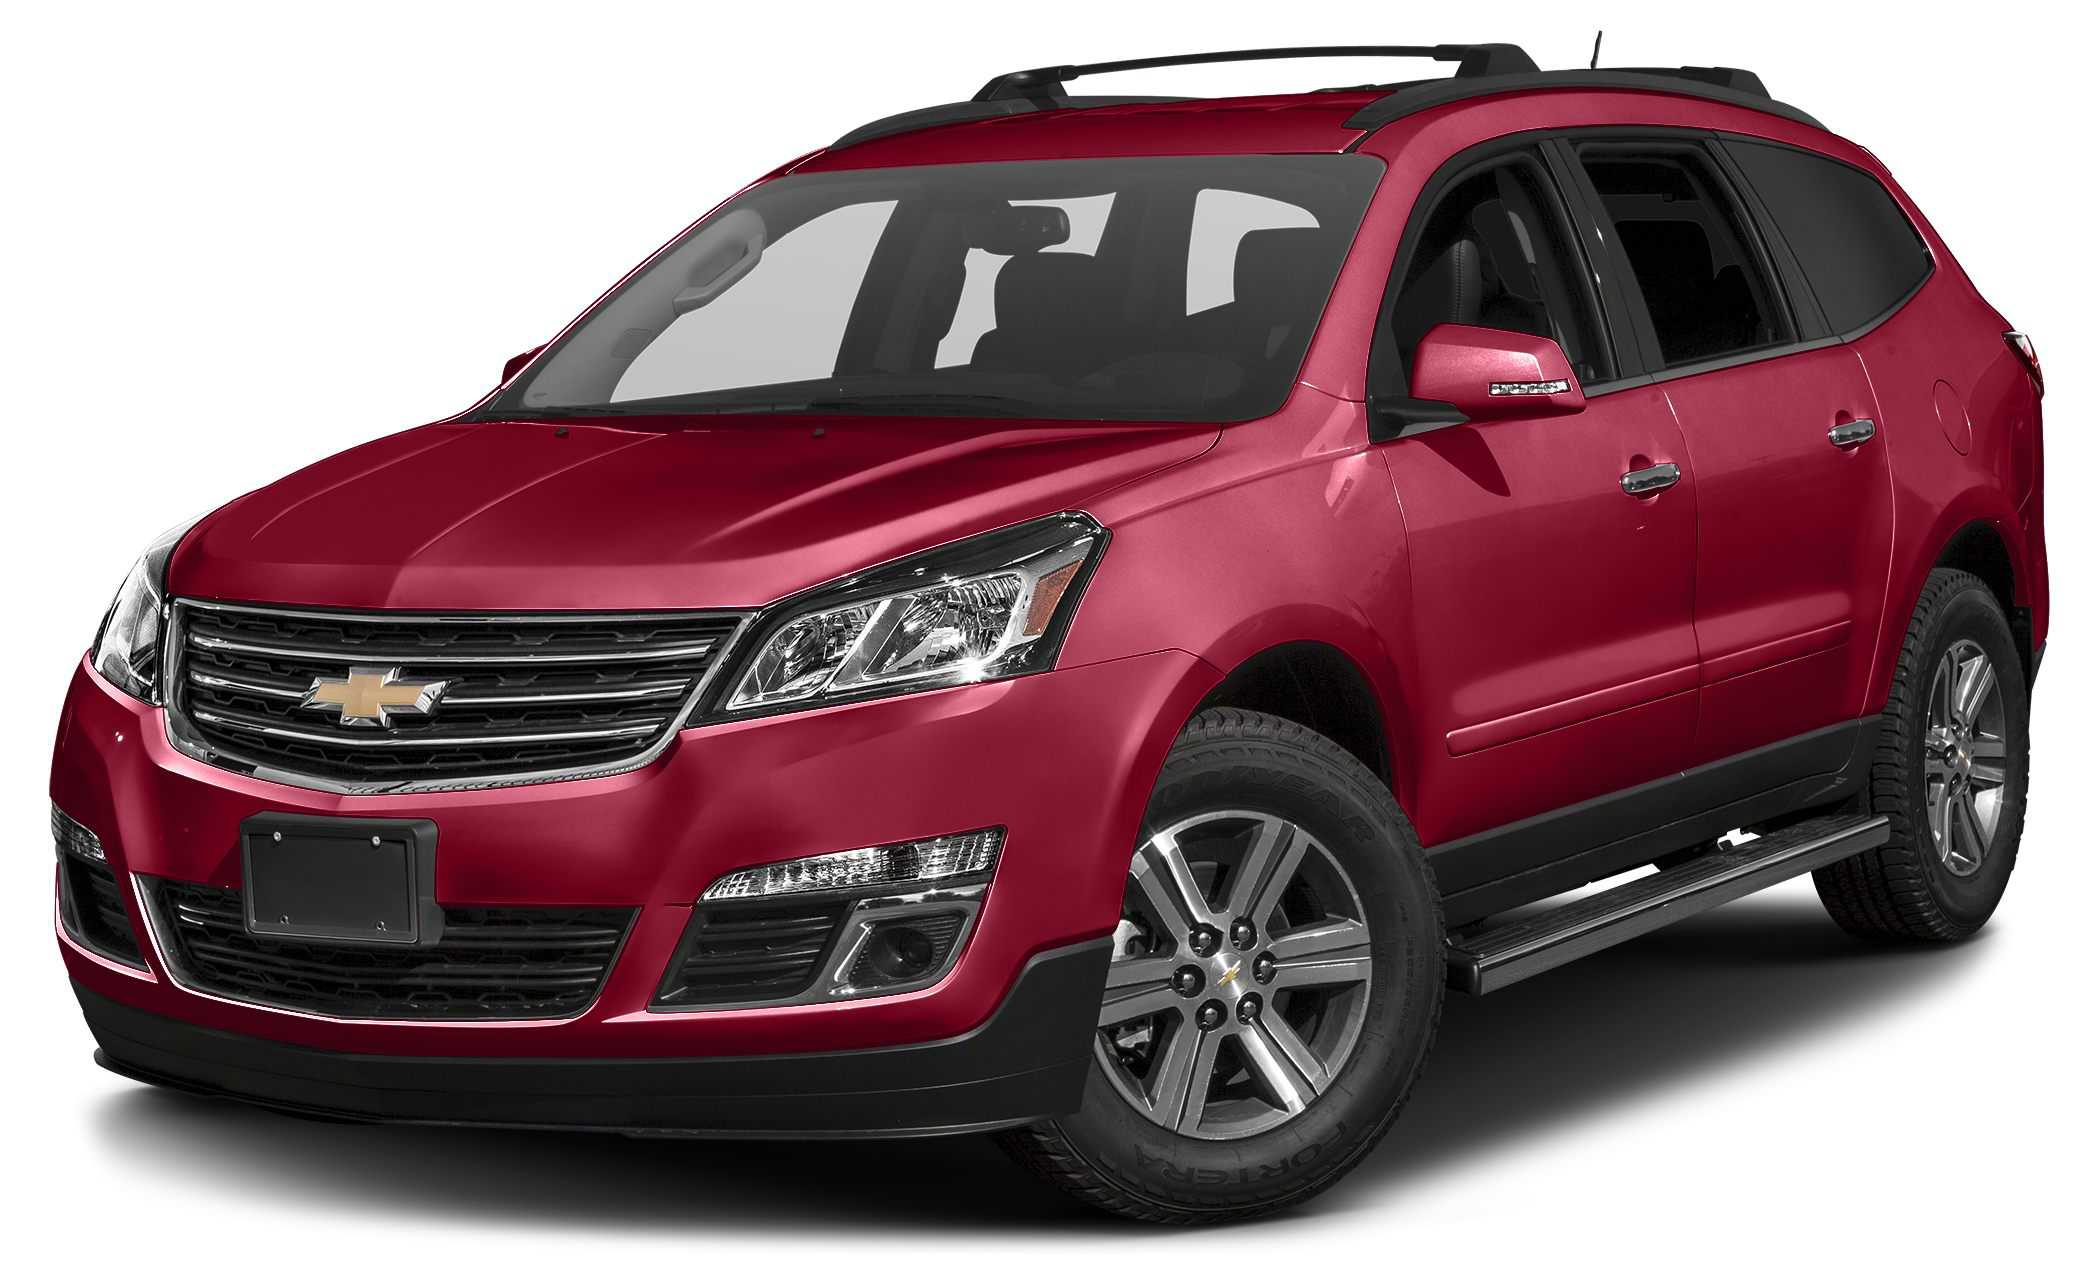 Chevrolet Equinox Prices, Reviews and Pictures U.S. News World Pictures of chevrolet suvs